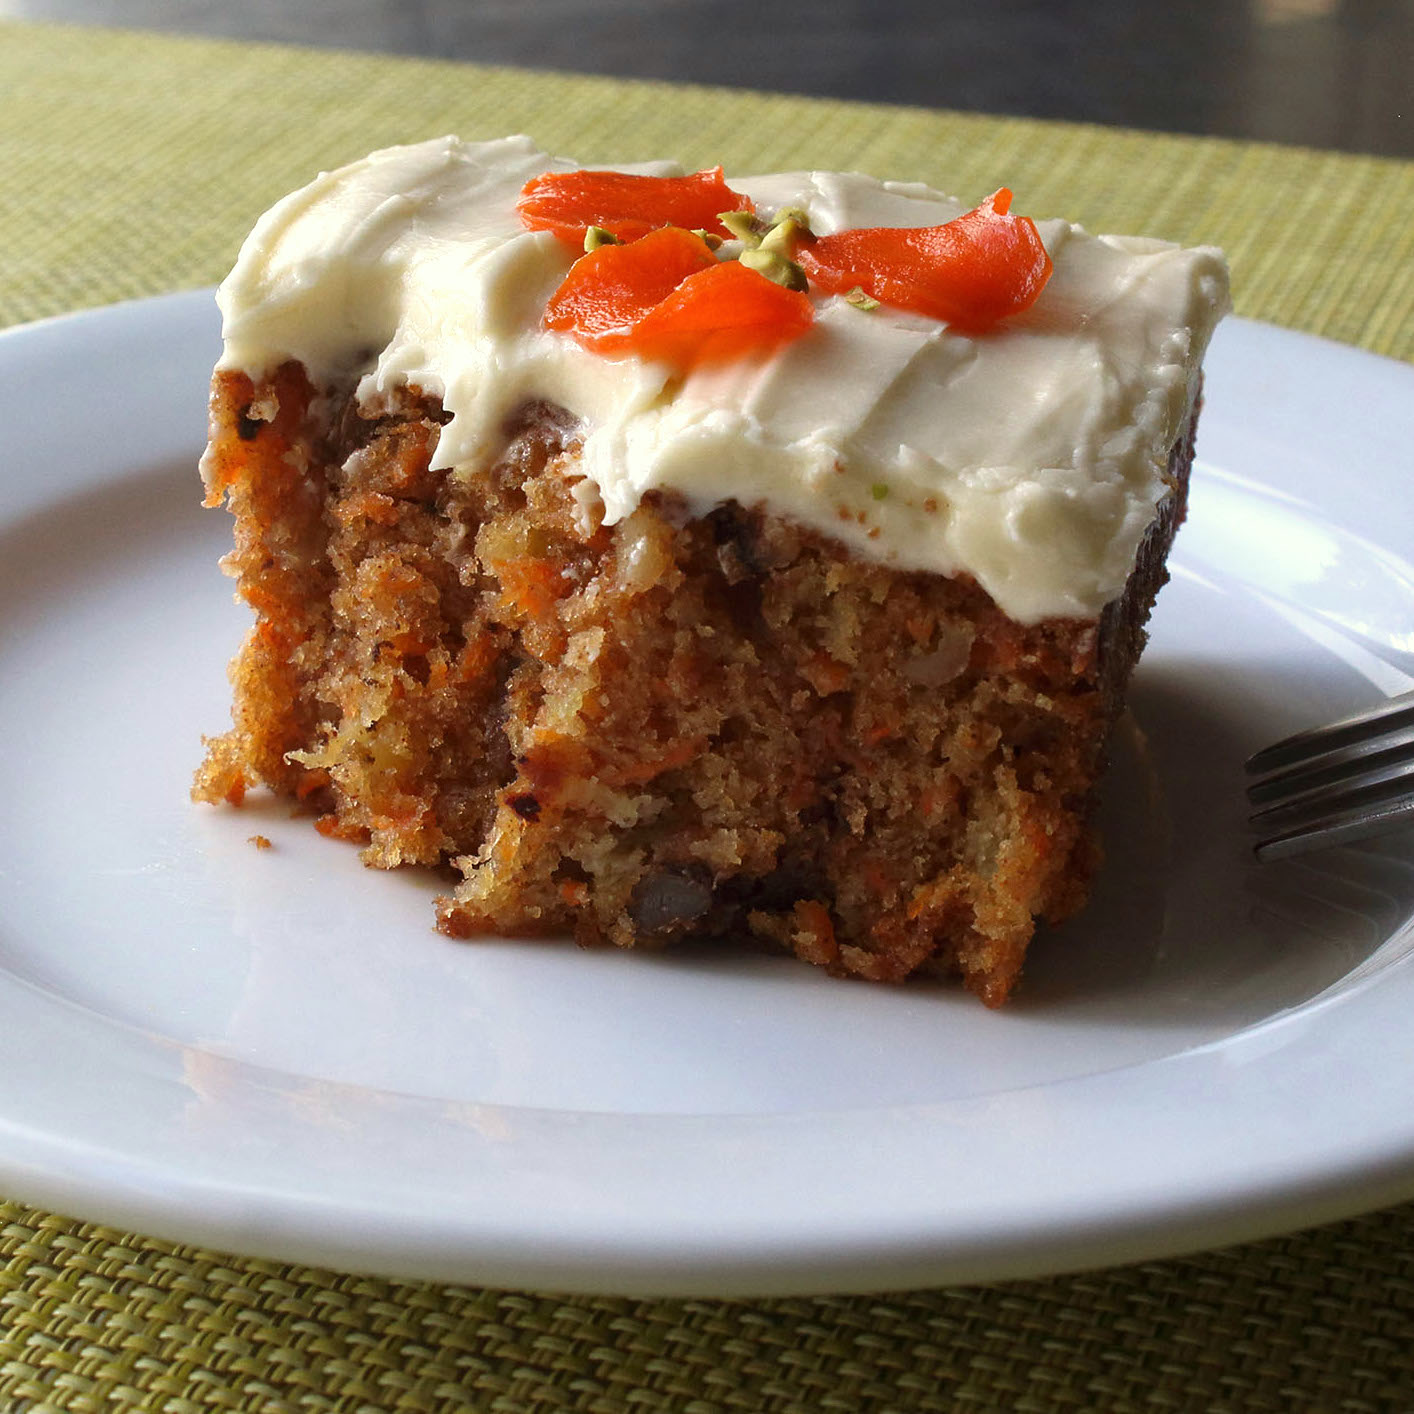 Chef John's carrot cake on a white plate with frosting